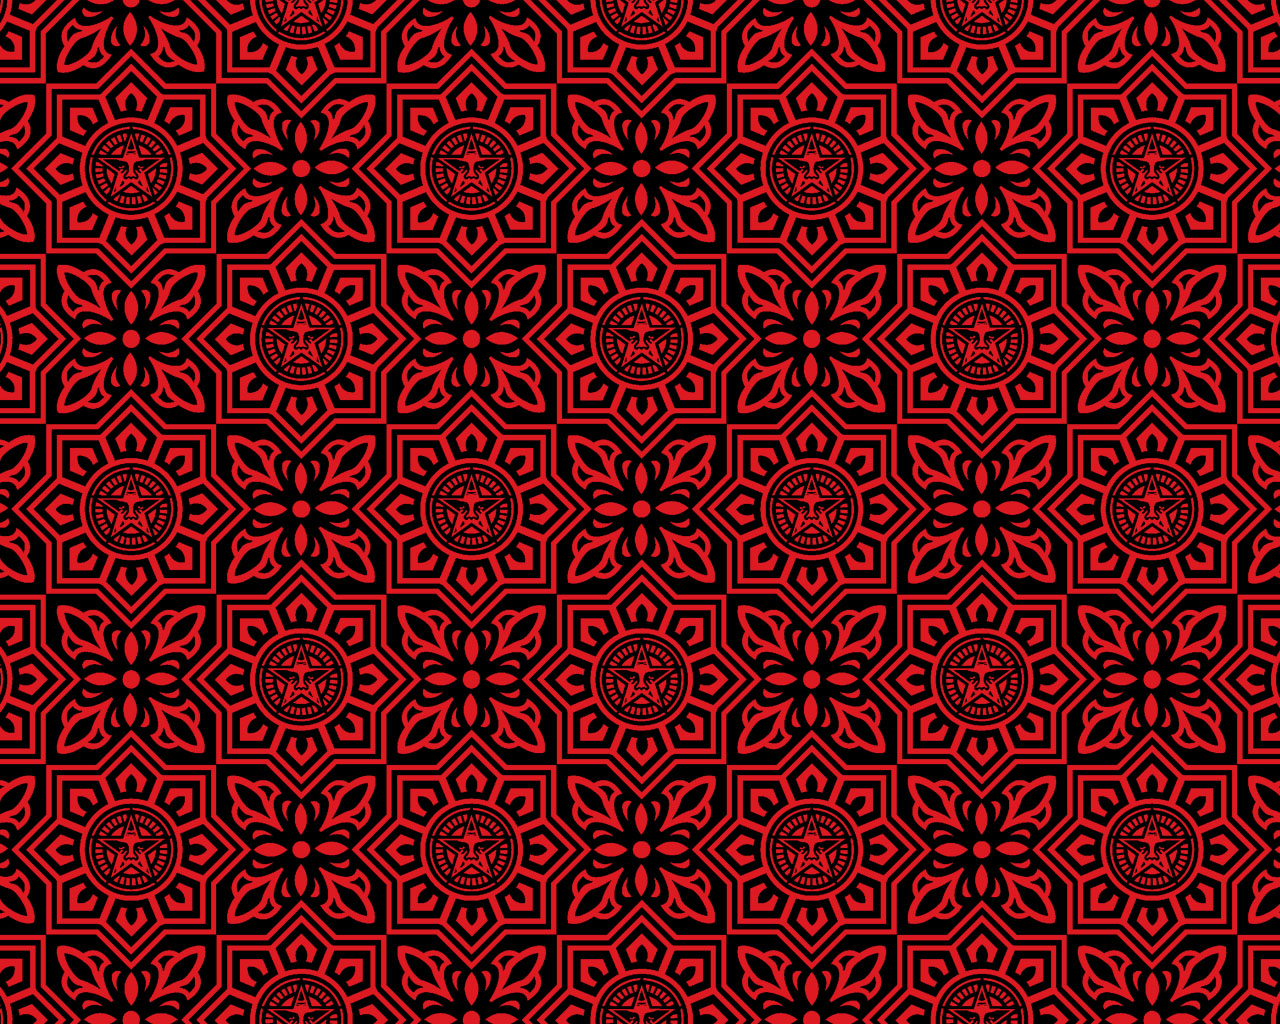 Obey wallpaper - Wallpaper Bit